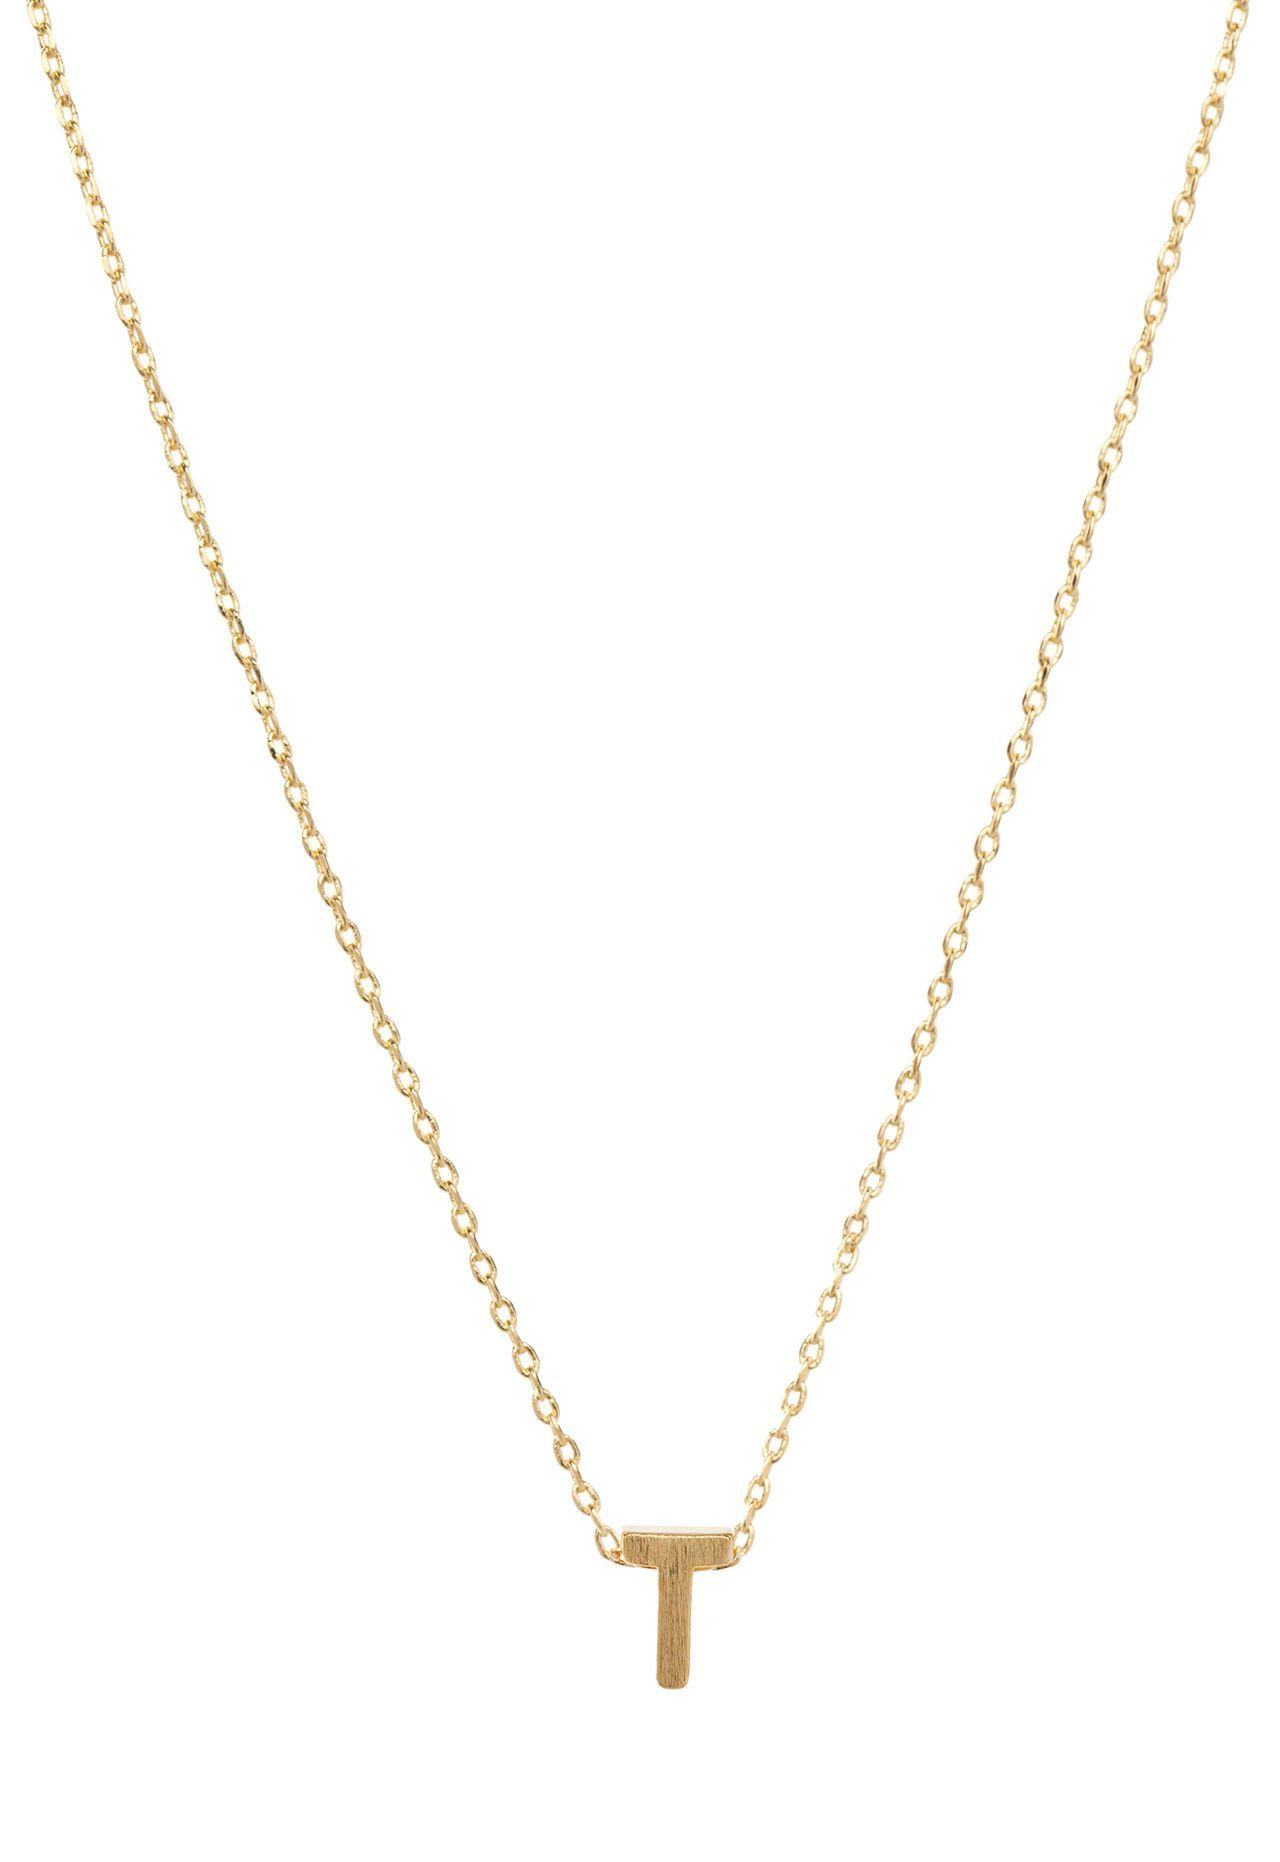 h pendant chains initial letter necklace gold diamond script